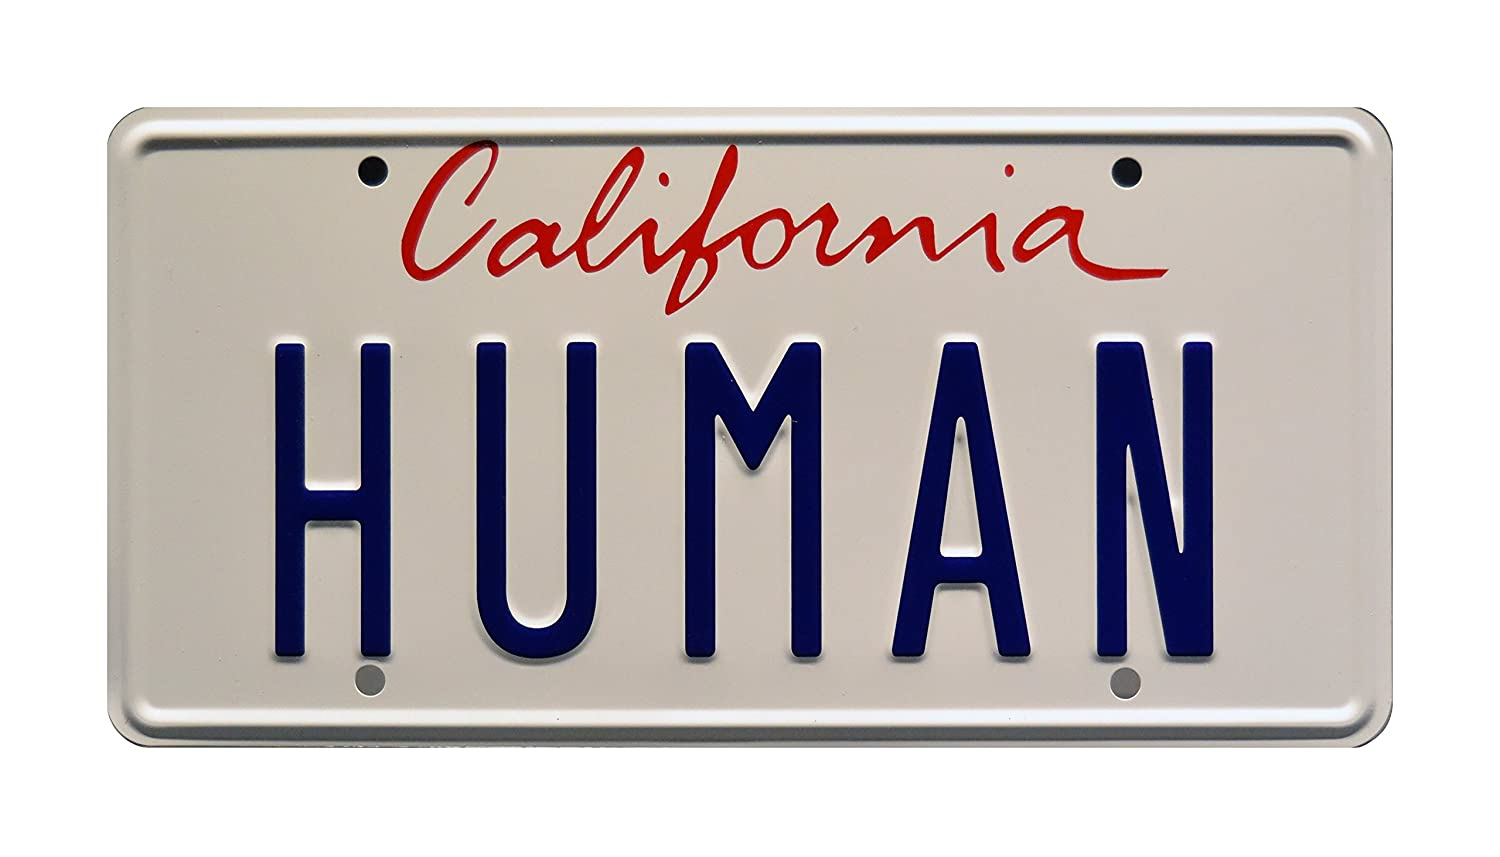 Daft Punk HUMAN Electroma Ferrari Metal Stamped Vanity Prop License Plate Celebrity Machines